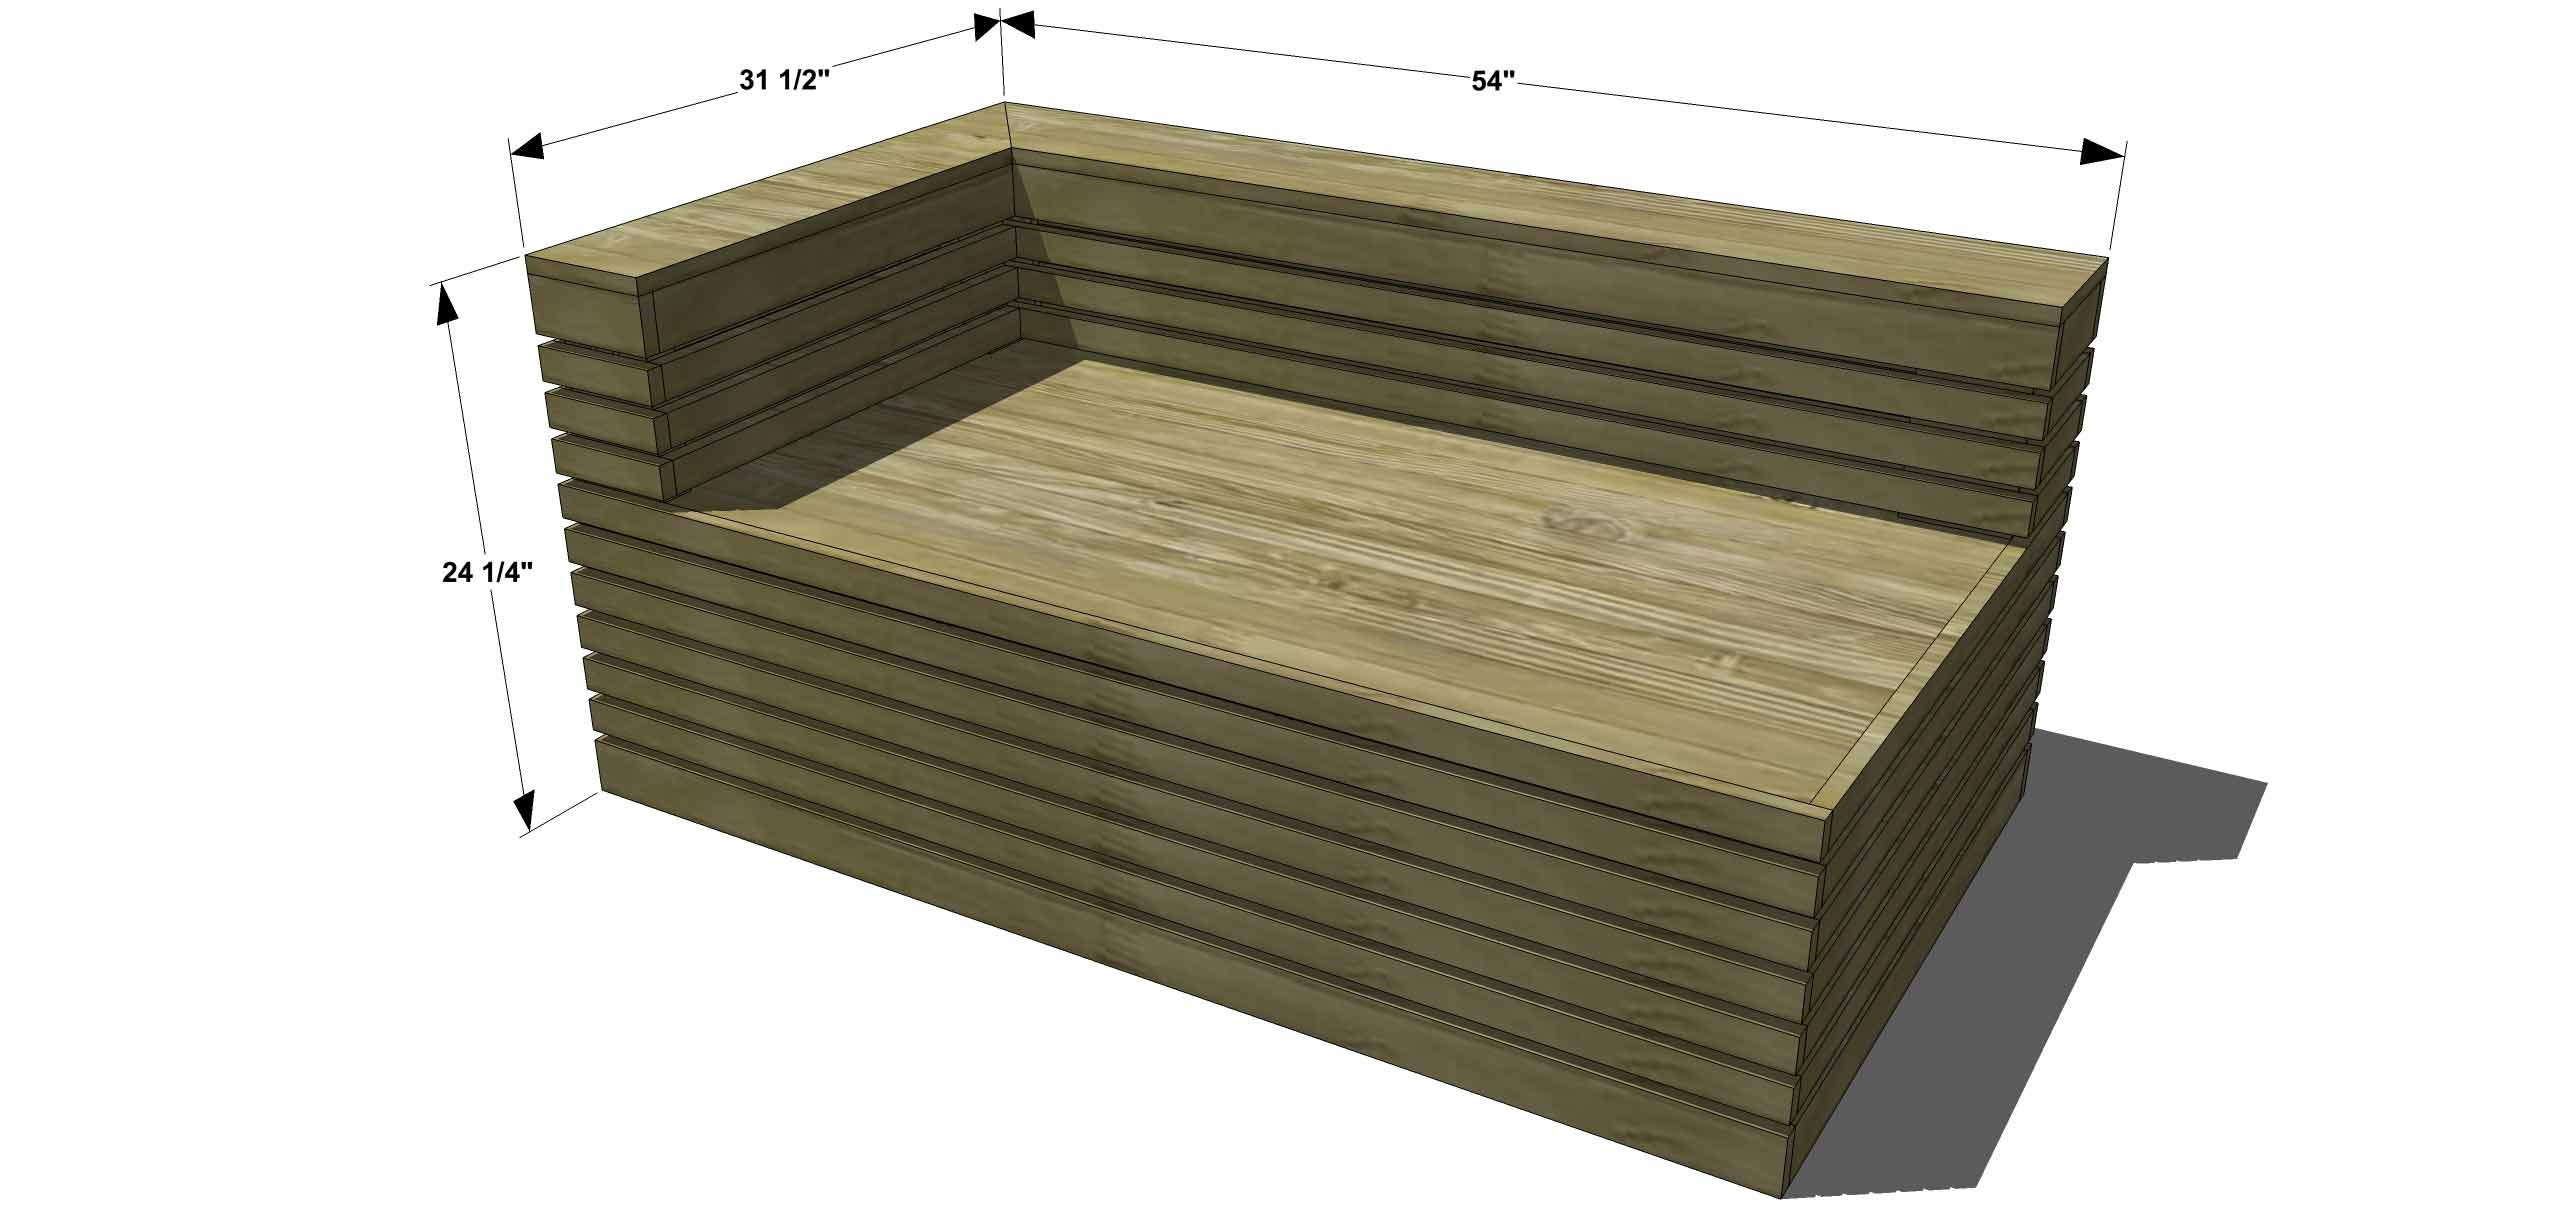 plans to build outdoor sectional sofa ikea sleeper sofas free diy furniture how an indoor